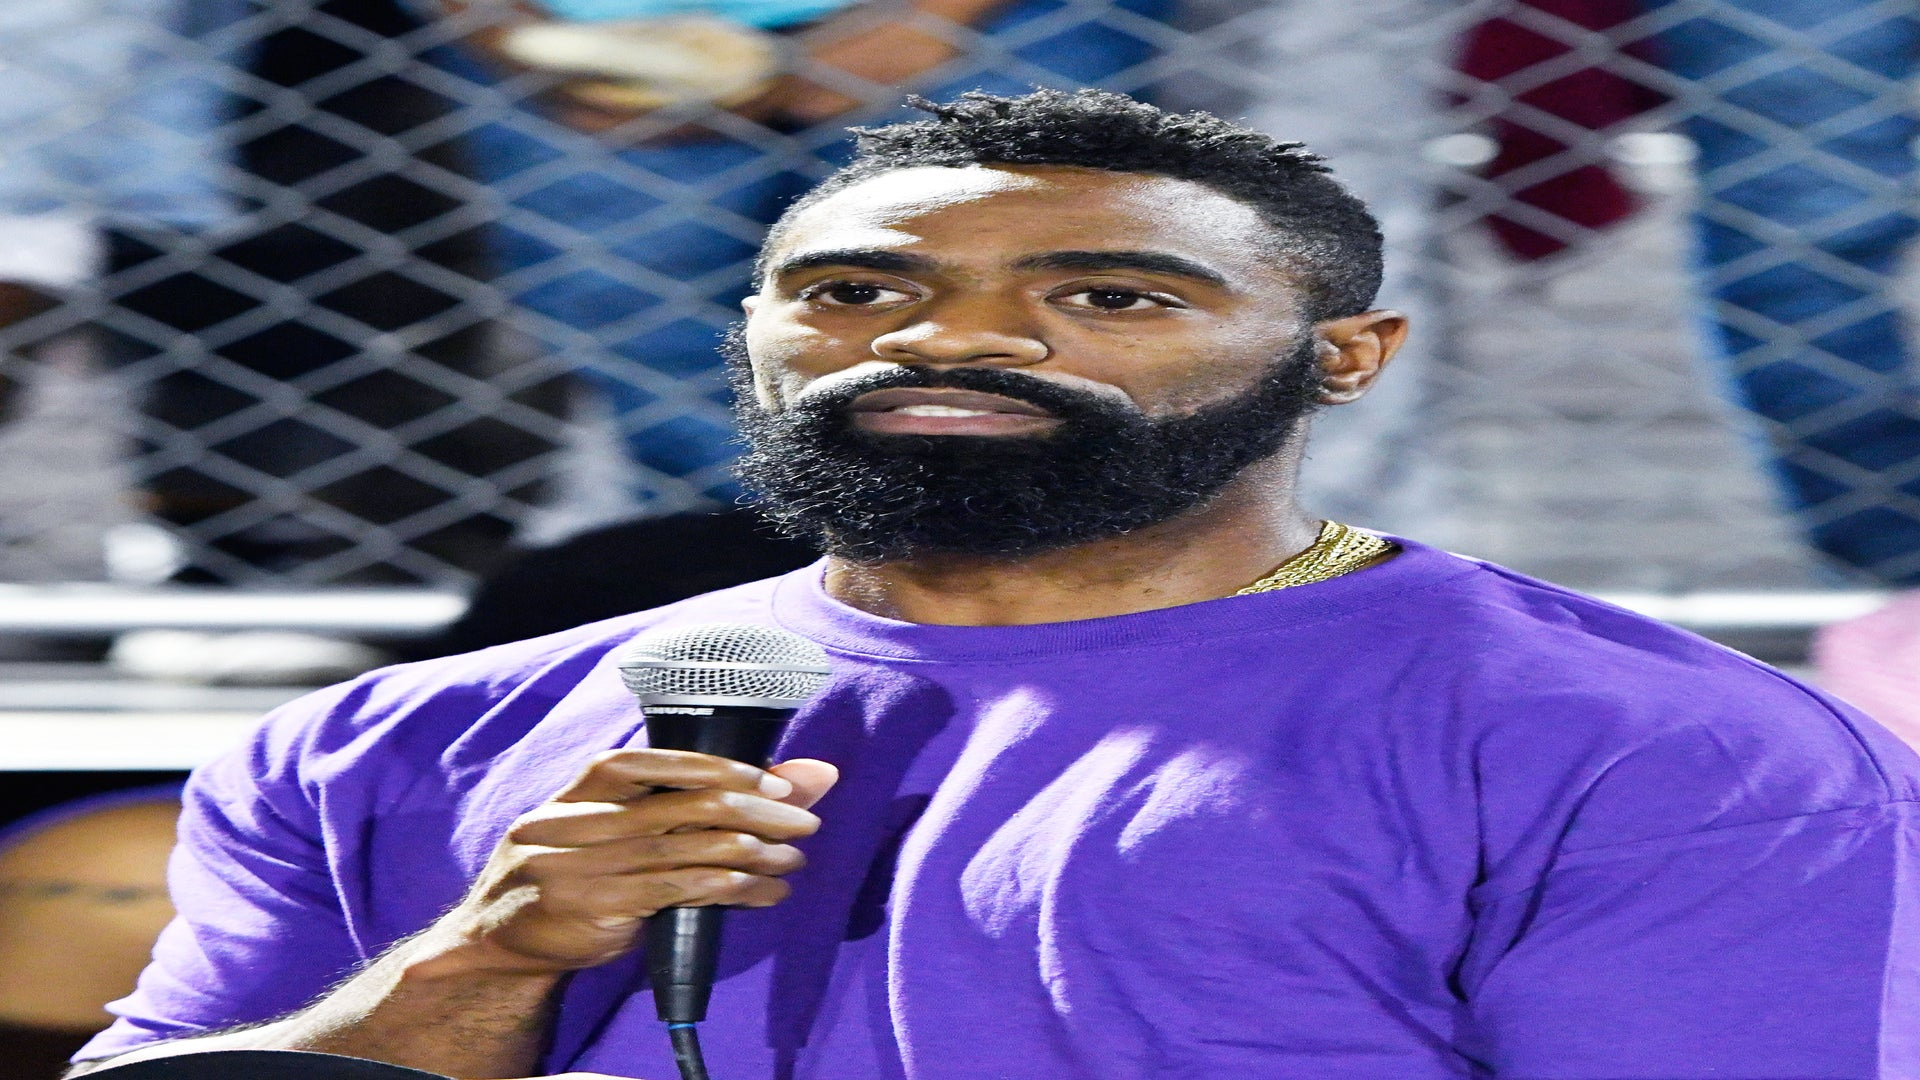 Tyson Gay thanks fans for supporting his family after daughter's death